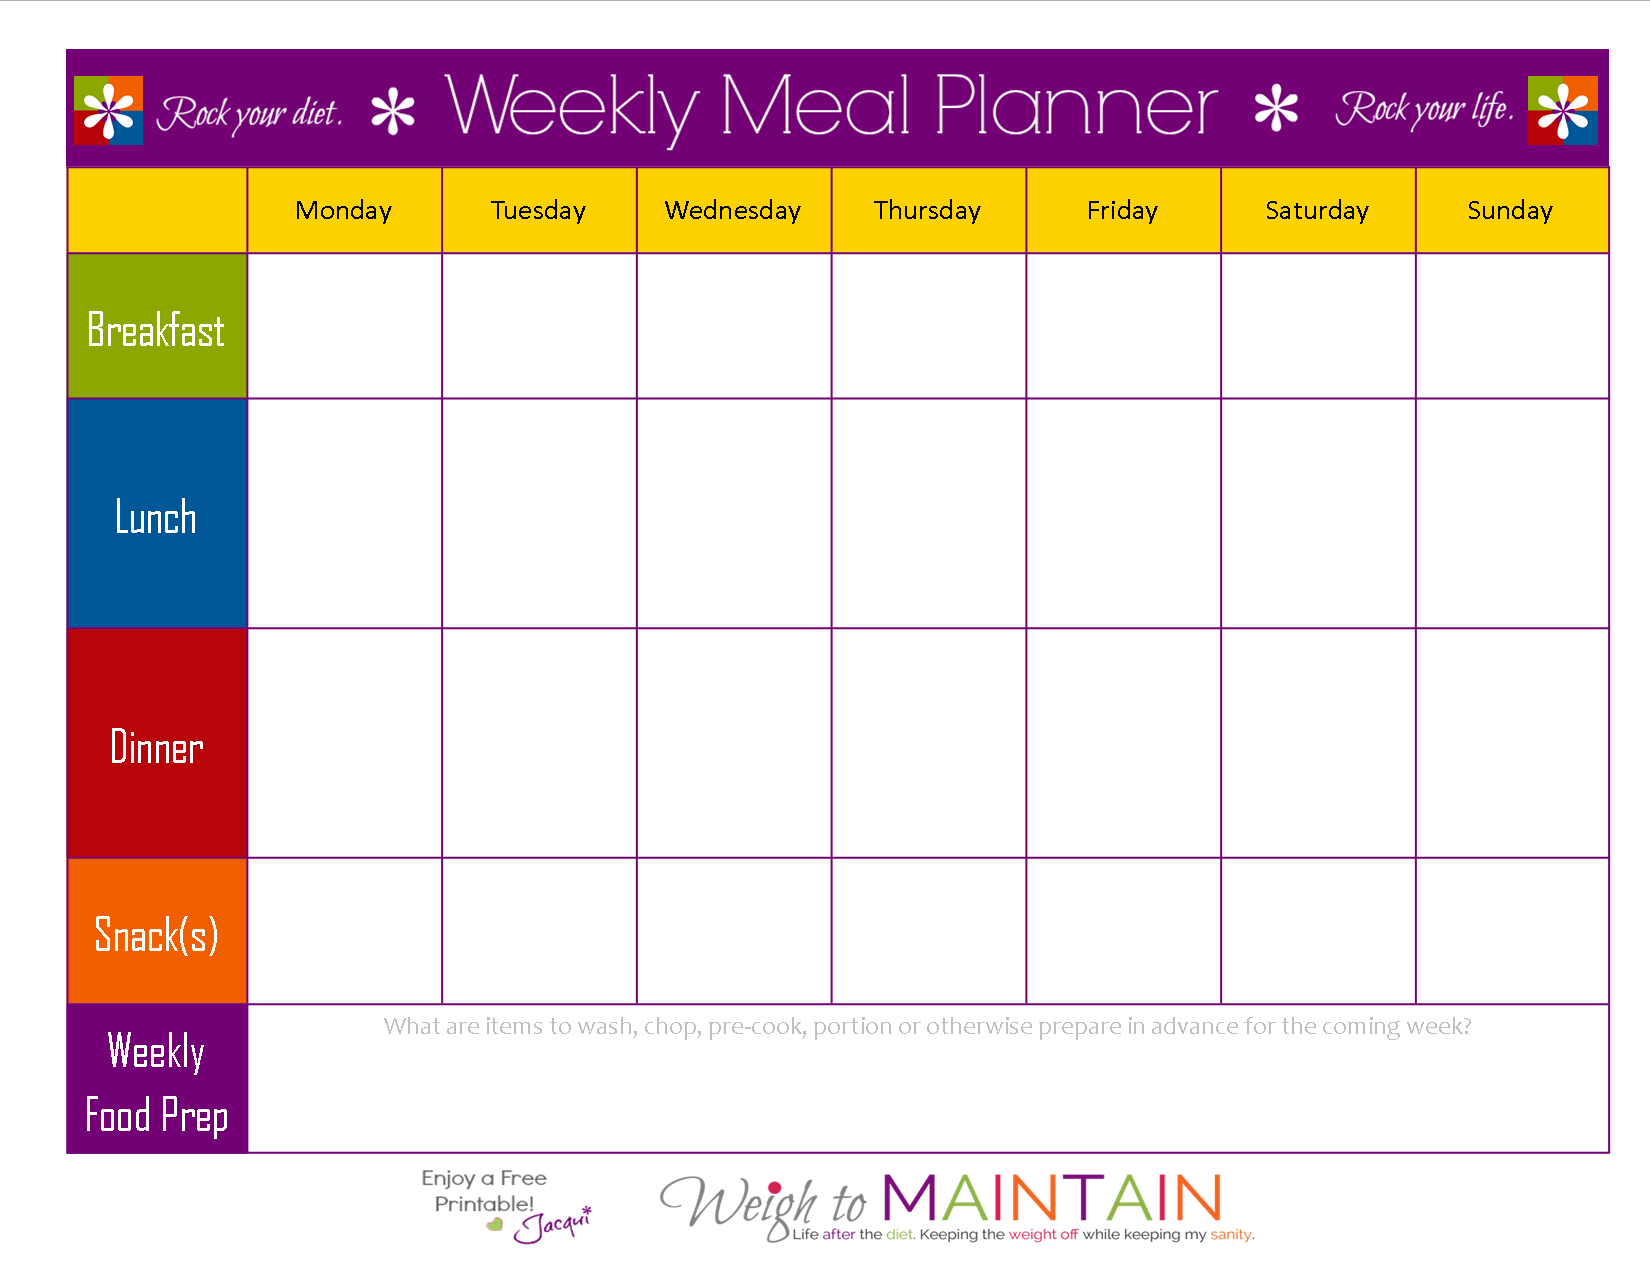 Worksheets Meal Planning Worksheet meal planning so simple even a gym bro can do it with printables printables